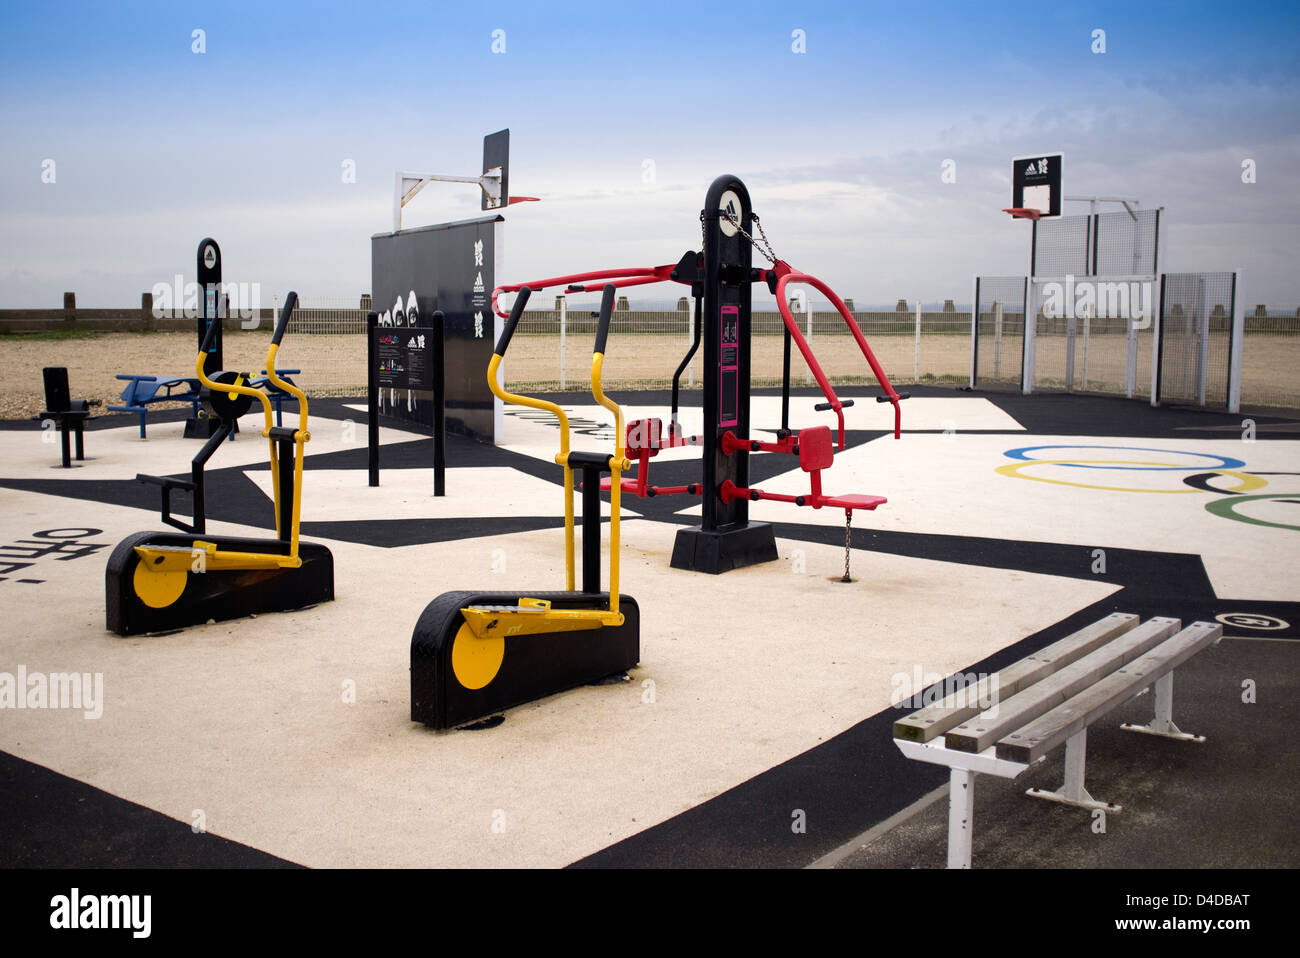 outdoor gym with exercise machines - Stock Image